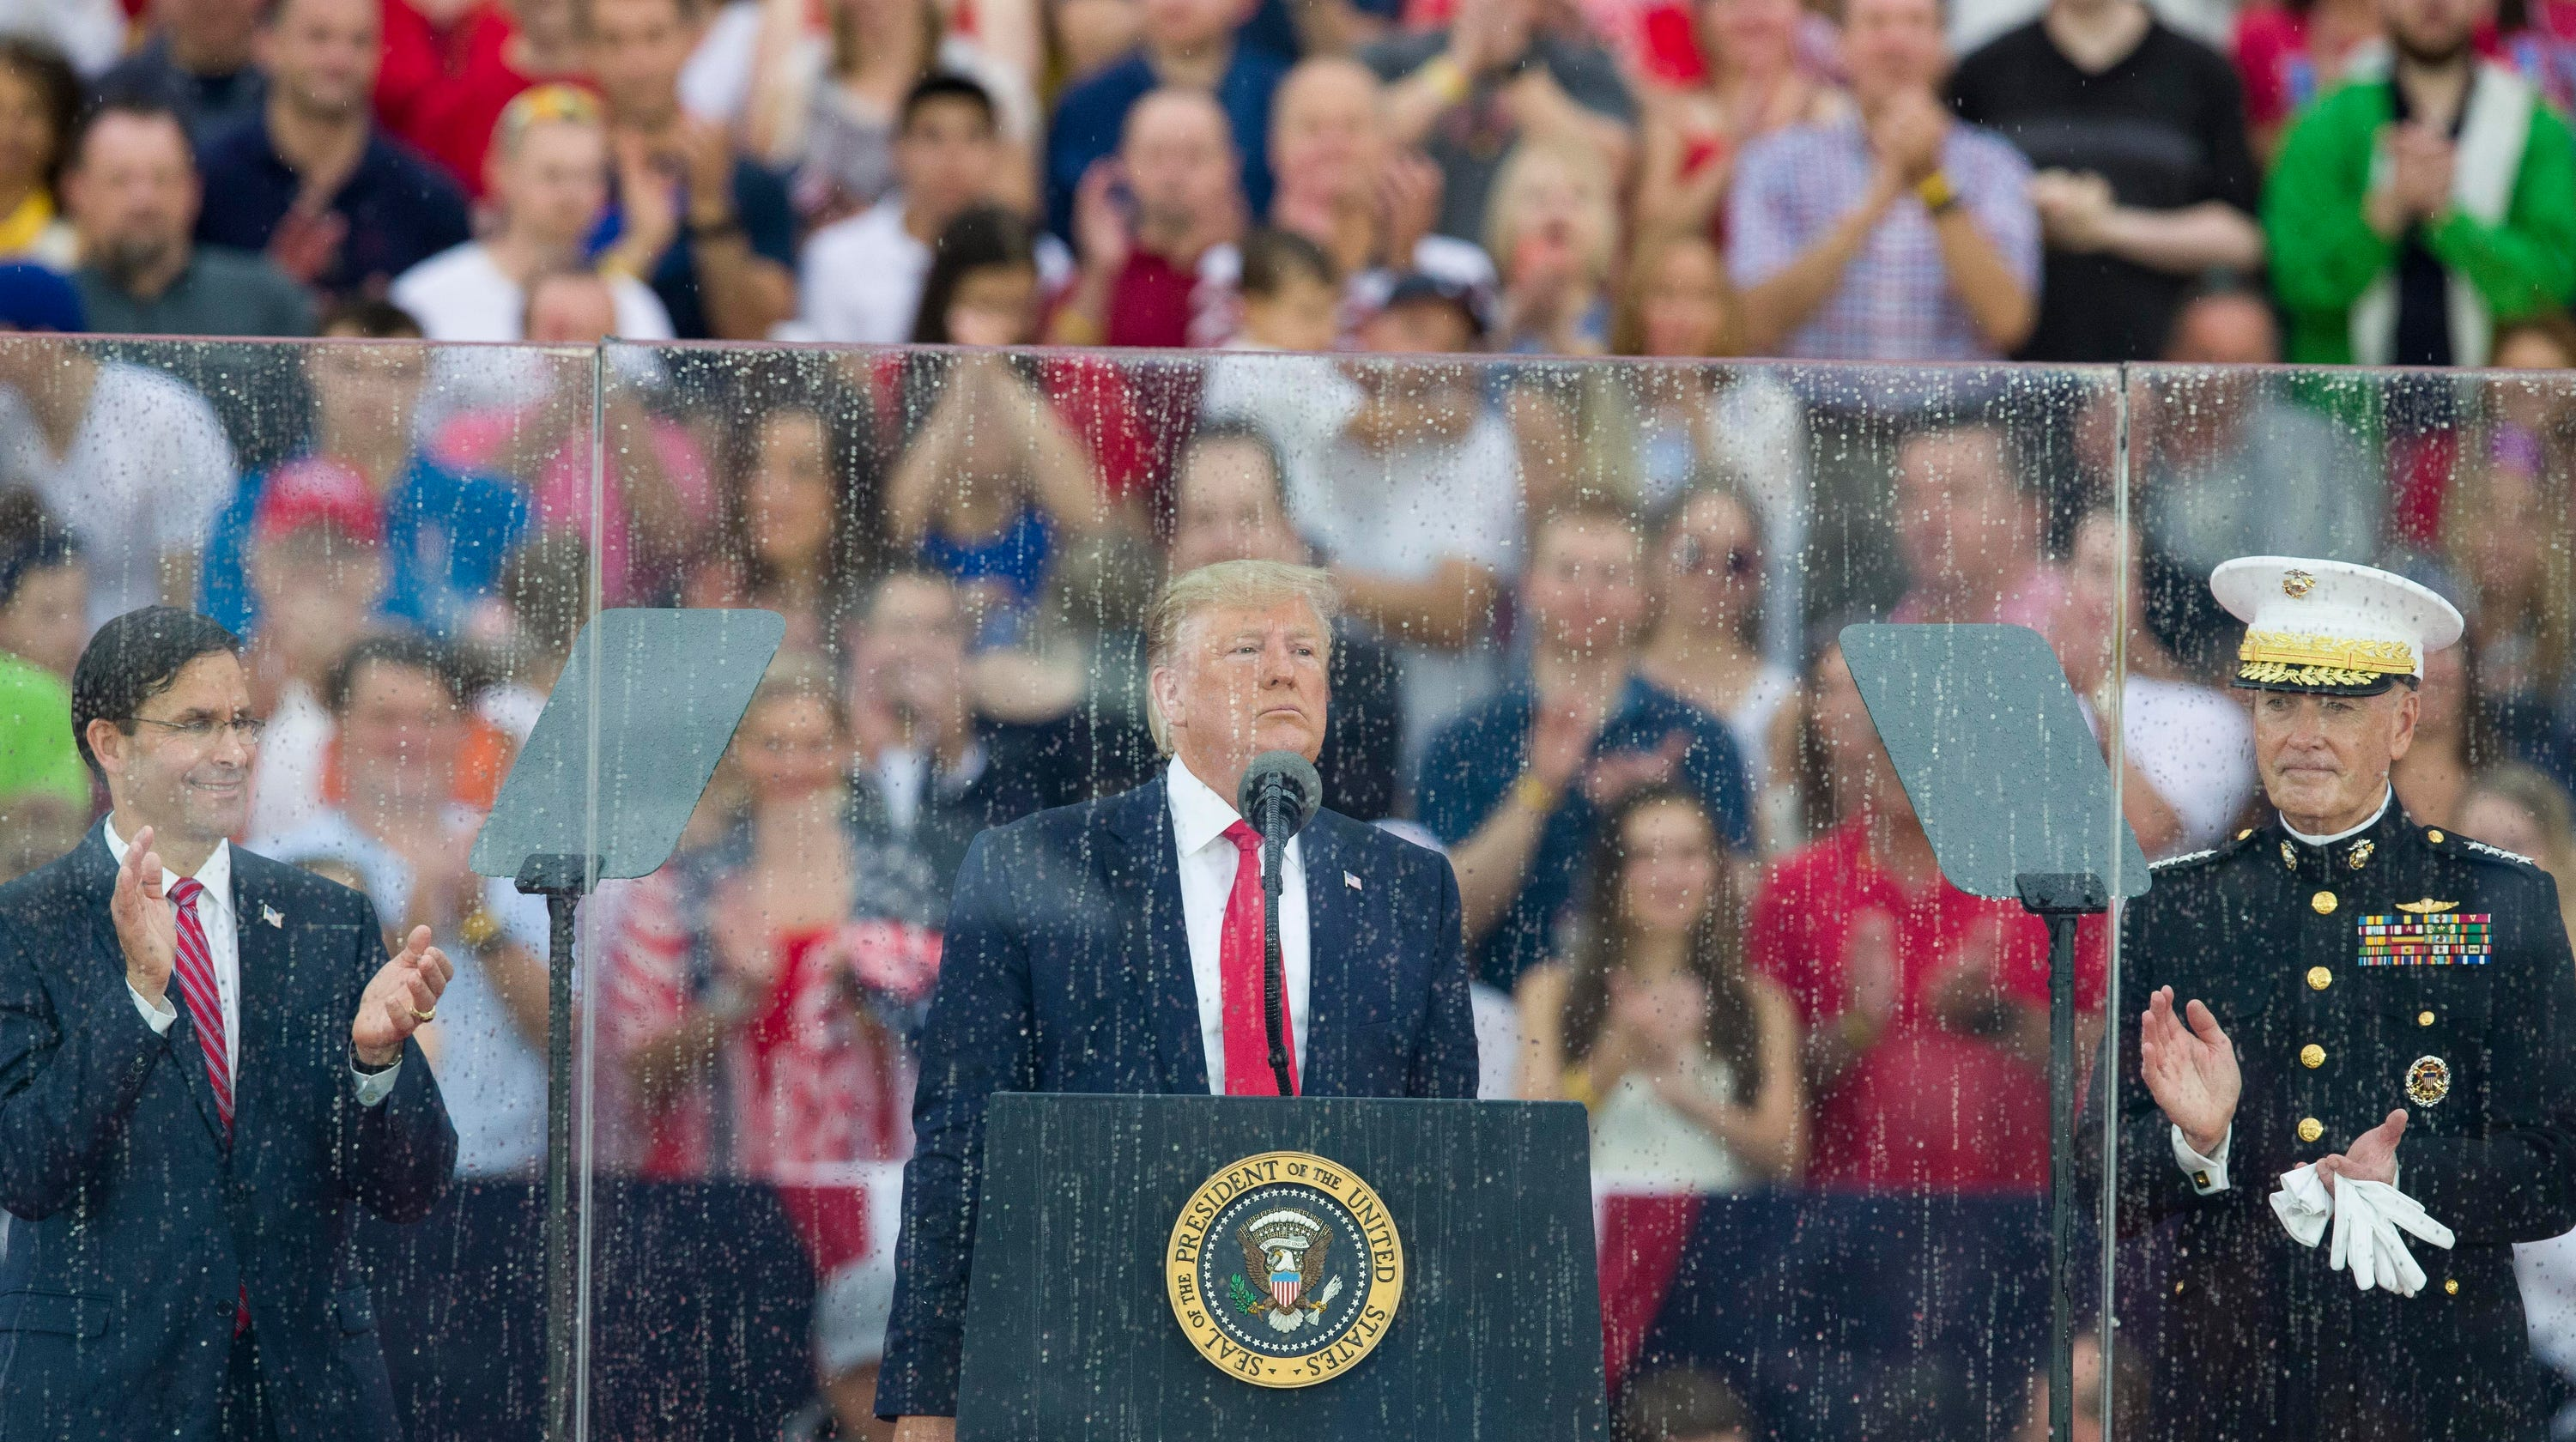 Trump faults rain, teleprompter for flub about 'airports' during American Revolution - USA TODAY